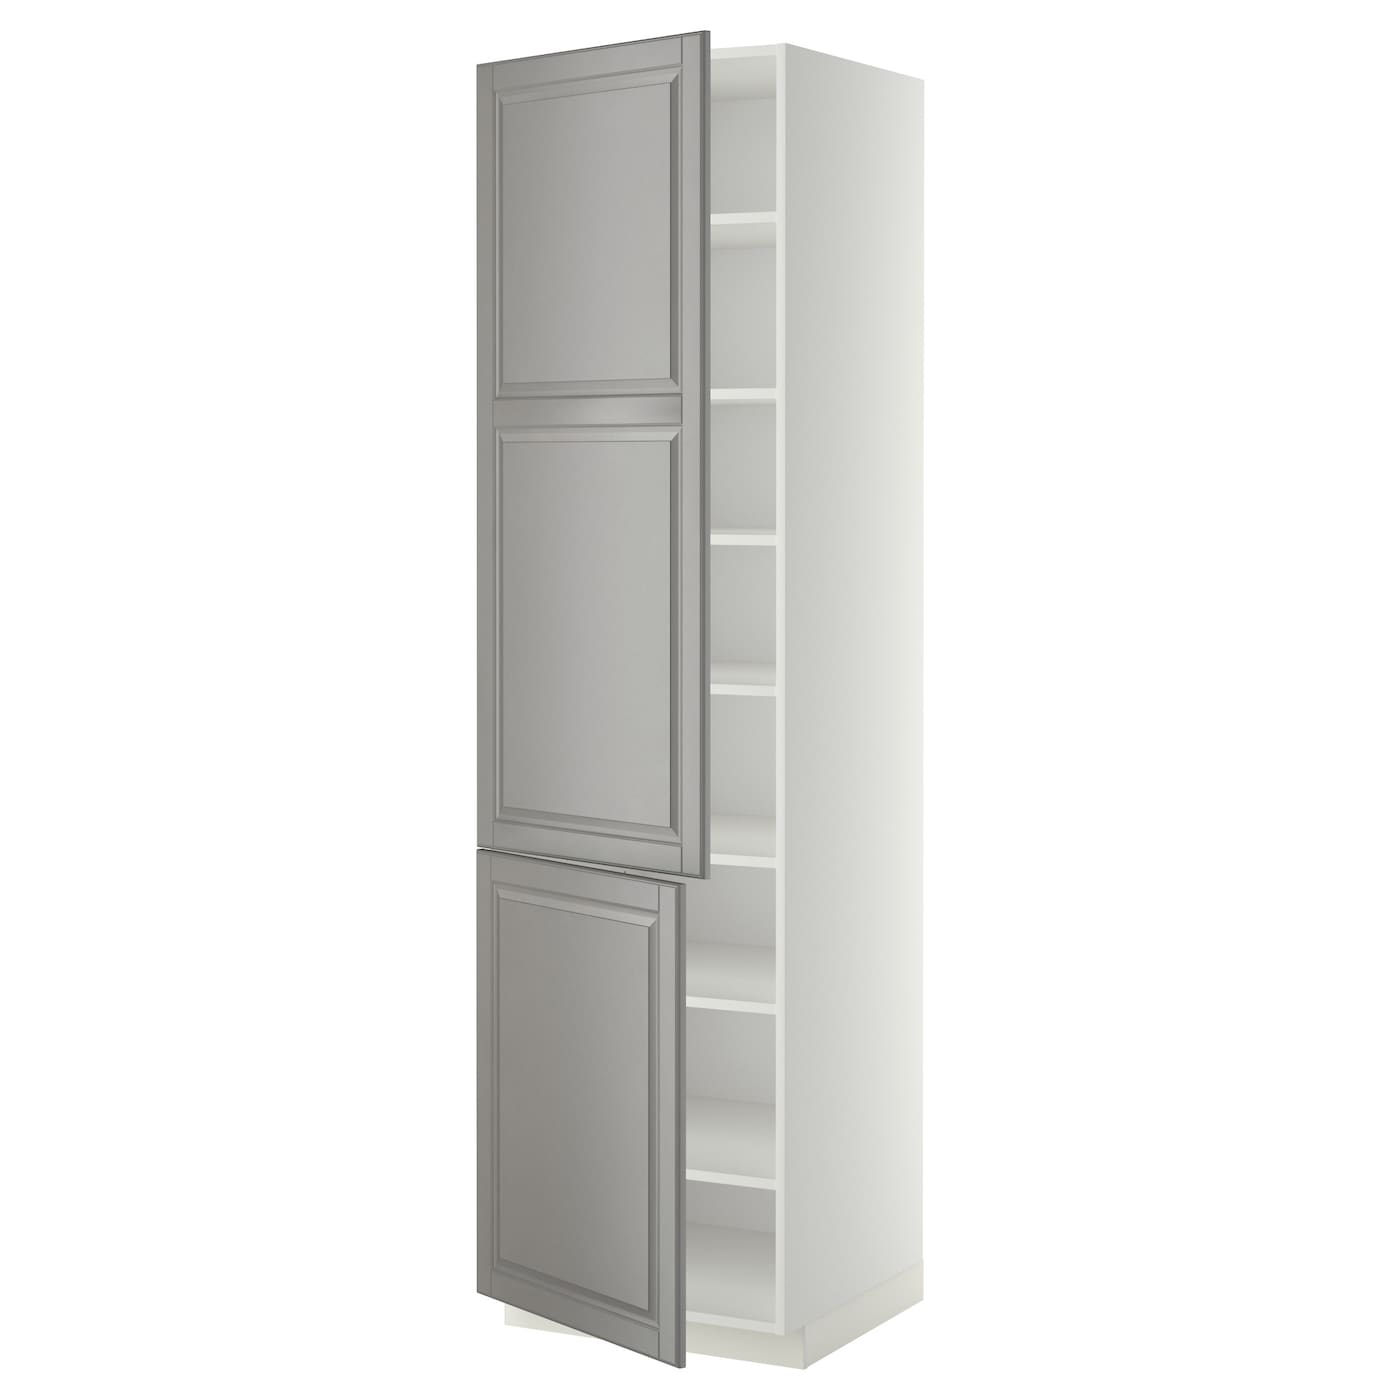 Metod high cabinet with shelves 2 doors white bodbyn grey - Ikea cabinet doors on existing cabinets ...